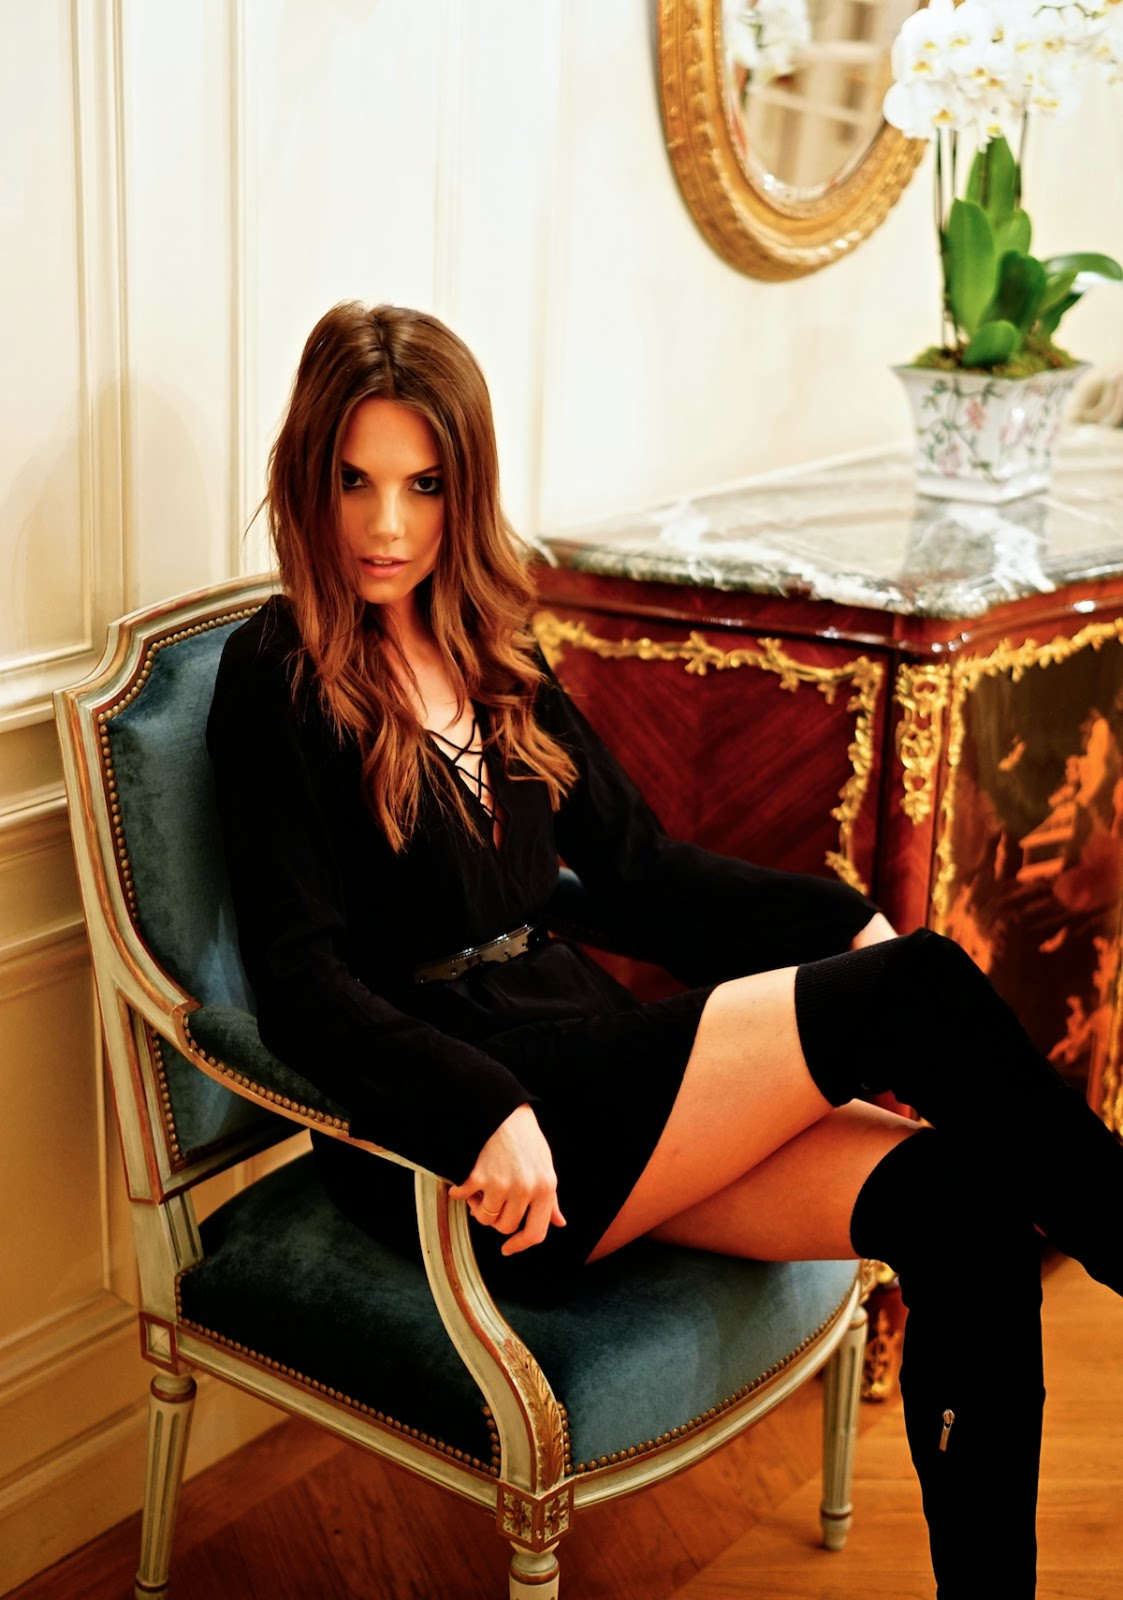 One Night in Paris - The Style Memo